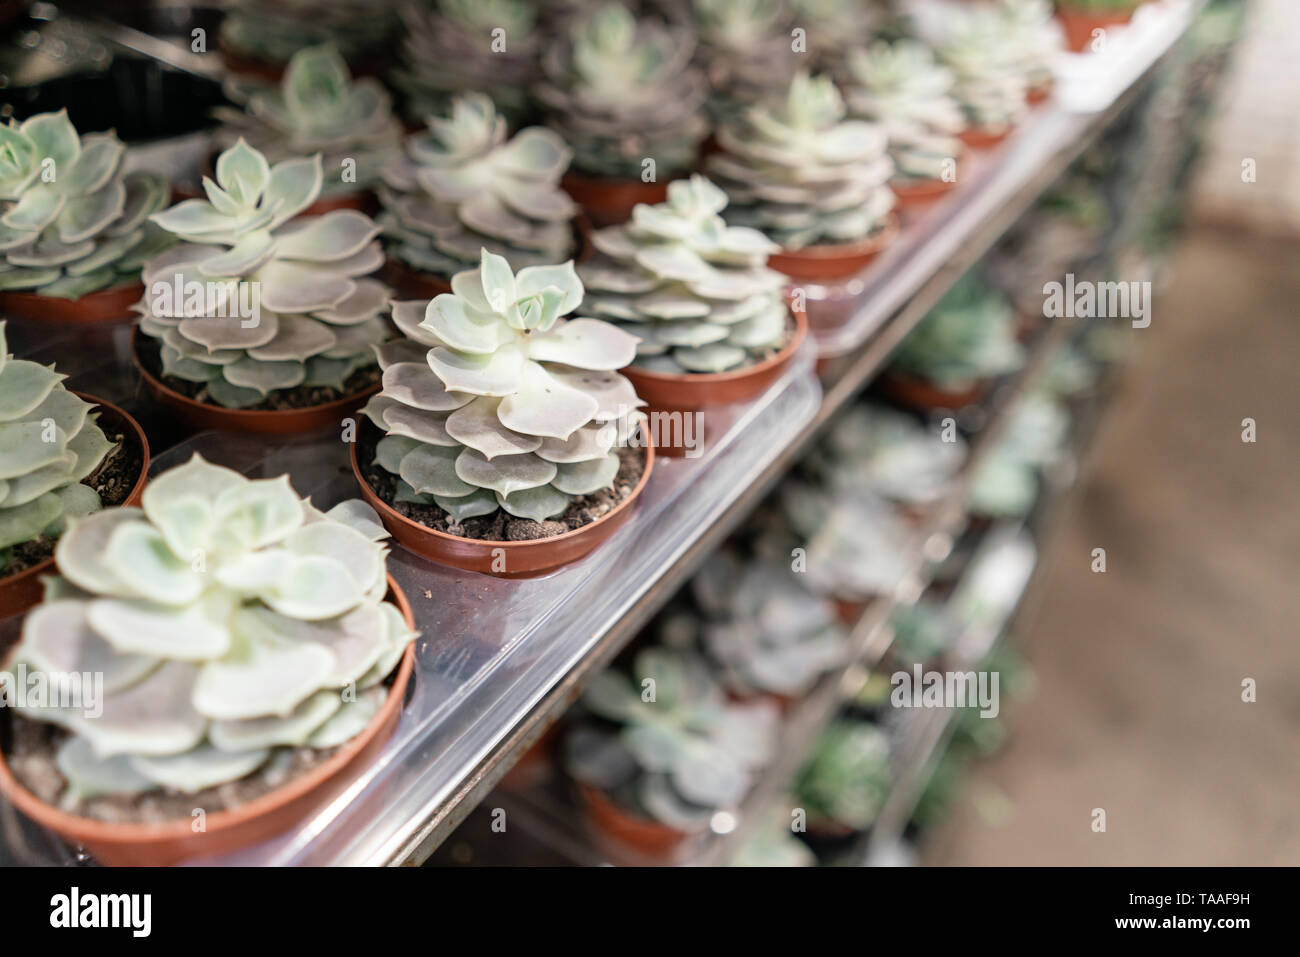 Garden center and wholesale supplier concept. Many different ...